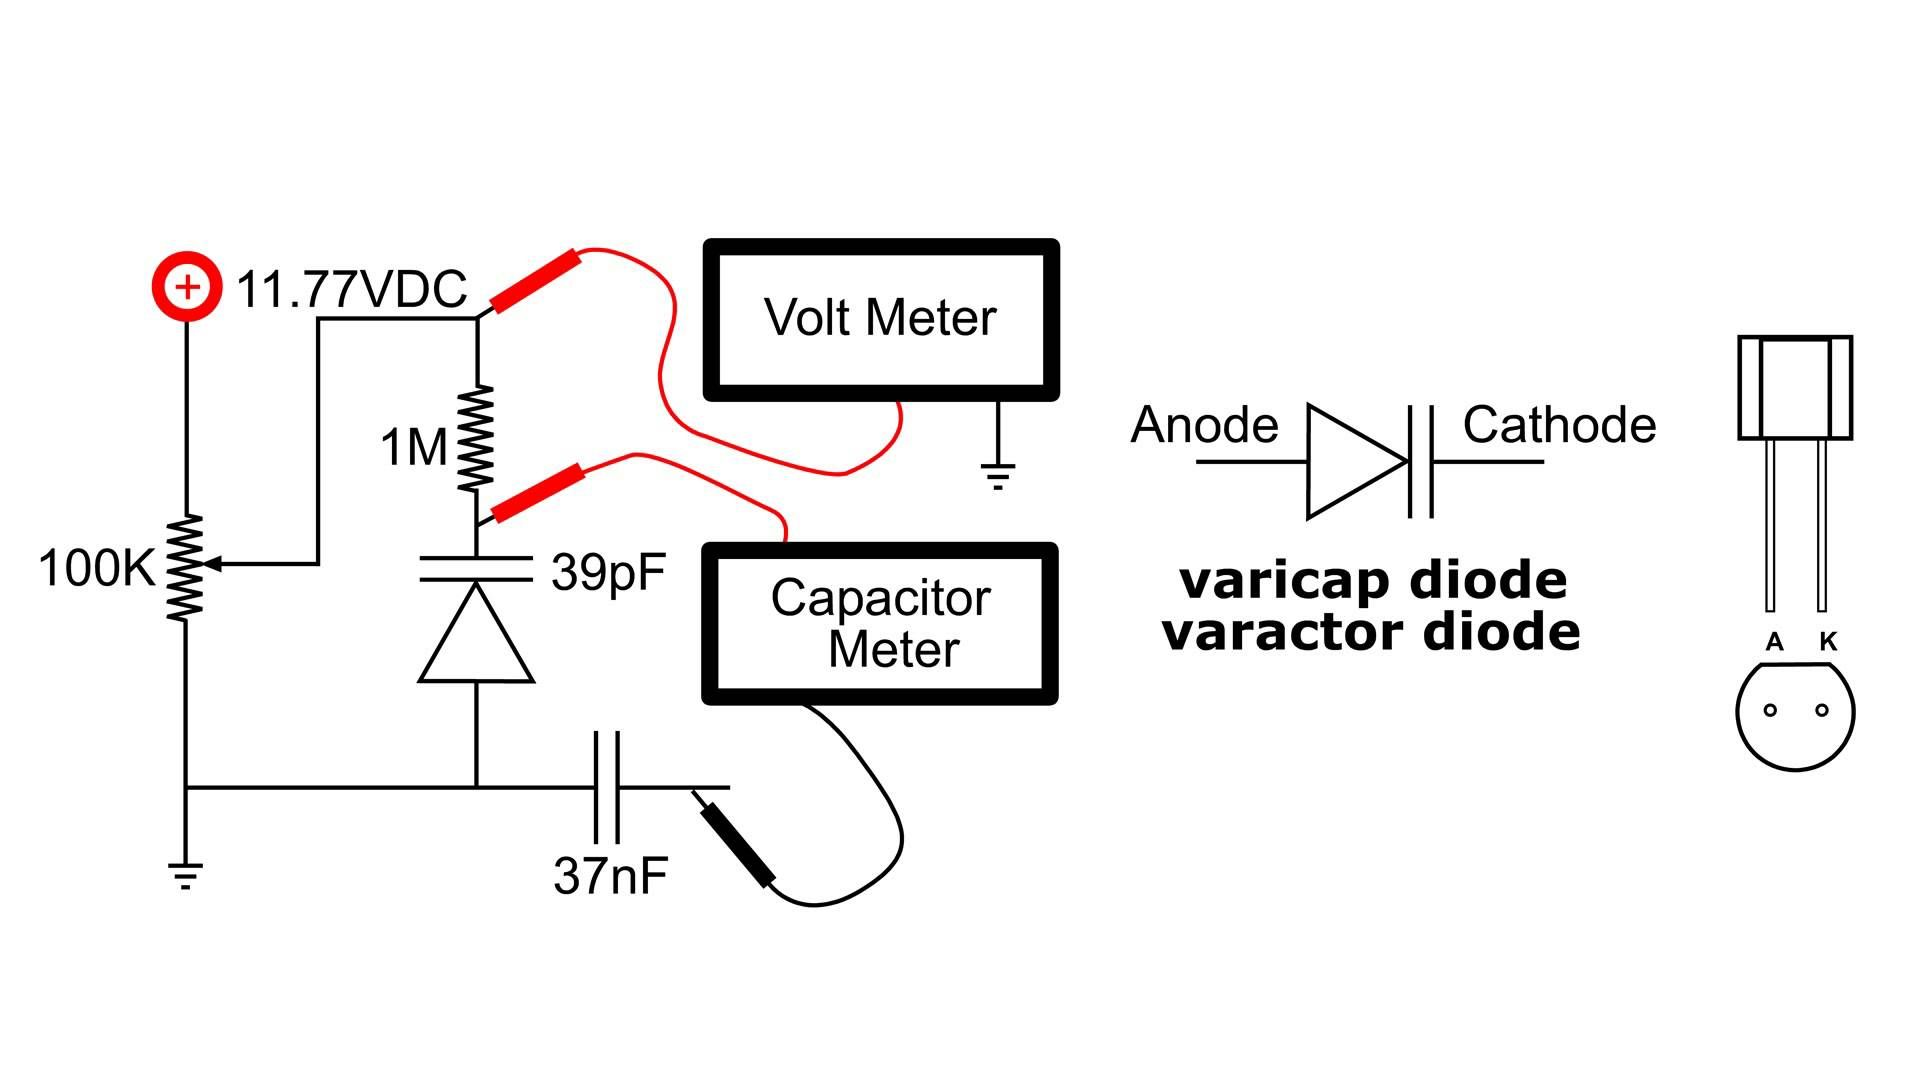 varactordiode u202c is called varicap or variable capacitance diode  the capacitance of this diode